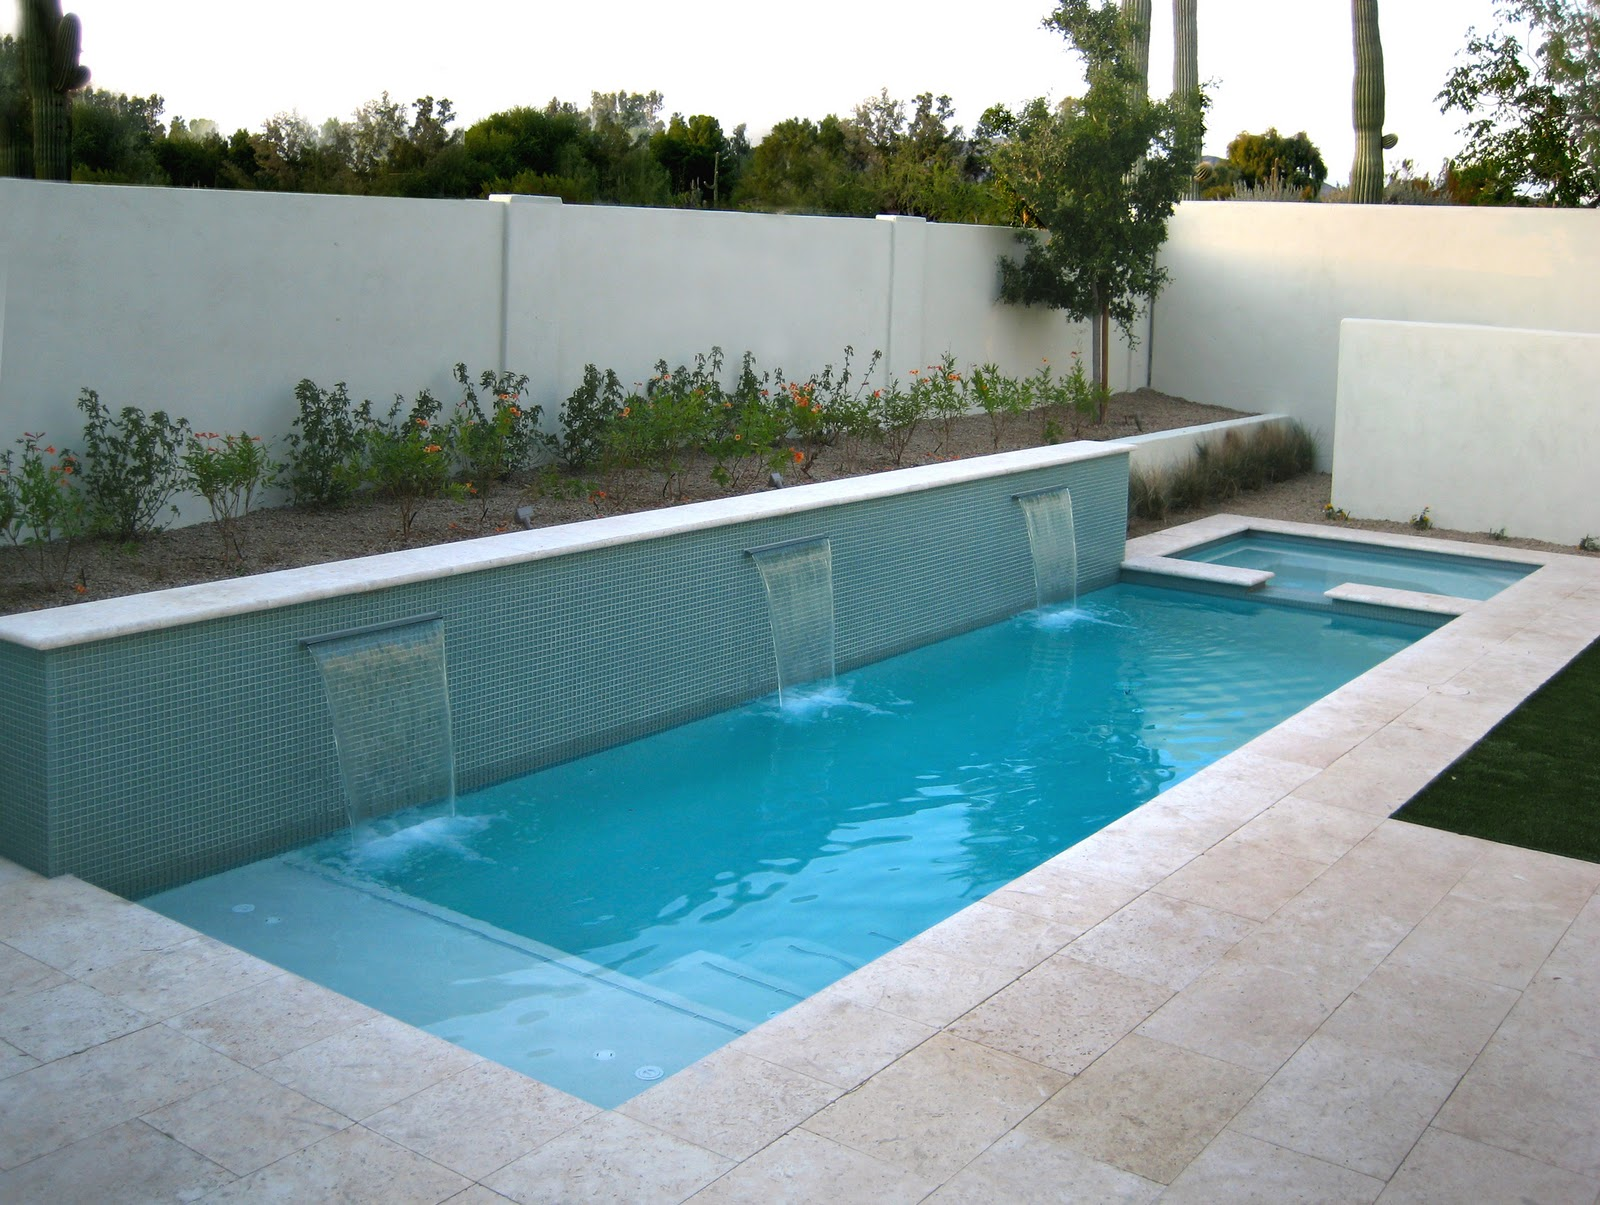 25 fabulous small backyard designs with swimming pool for Outdoor garden pool